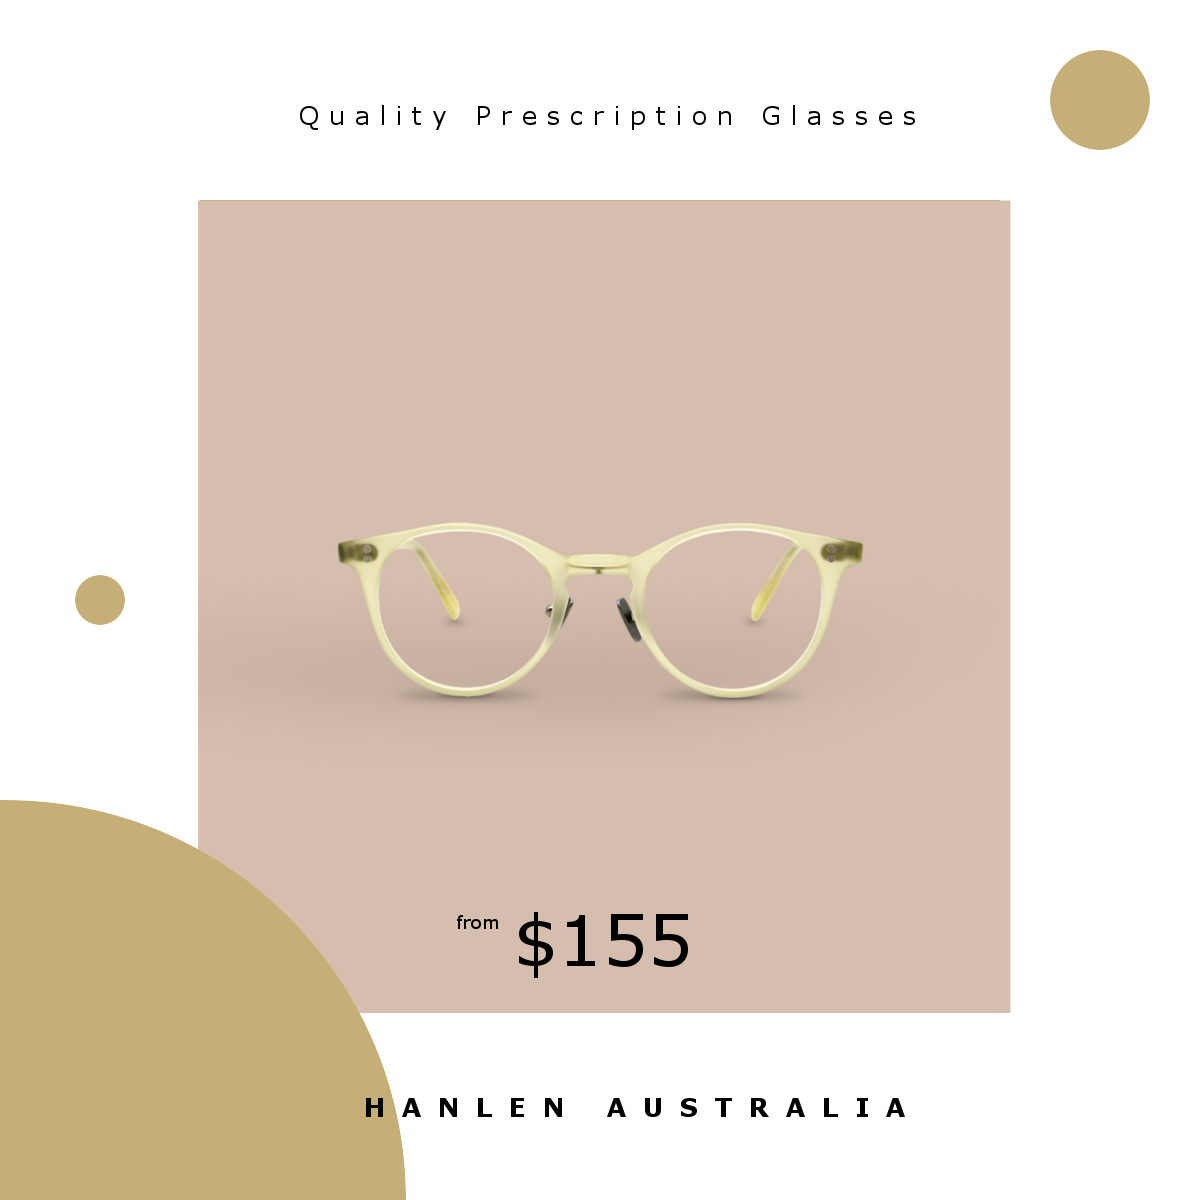 The best eyeglasses online, we do premium optical lenses, for glasses and sunglasses. Prescription included from $155! Explore our range and buy online!